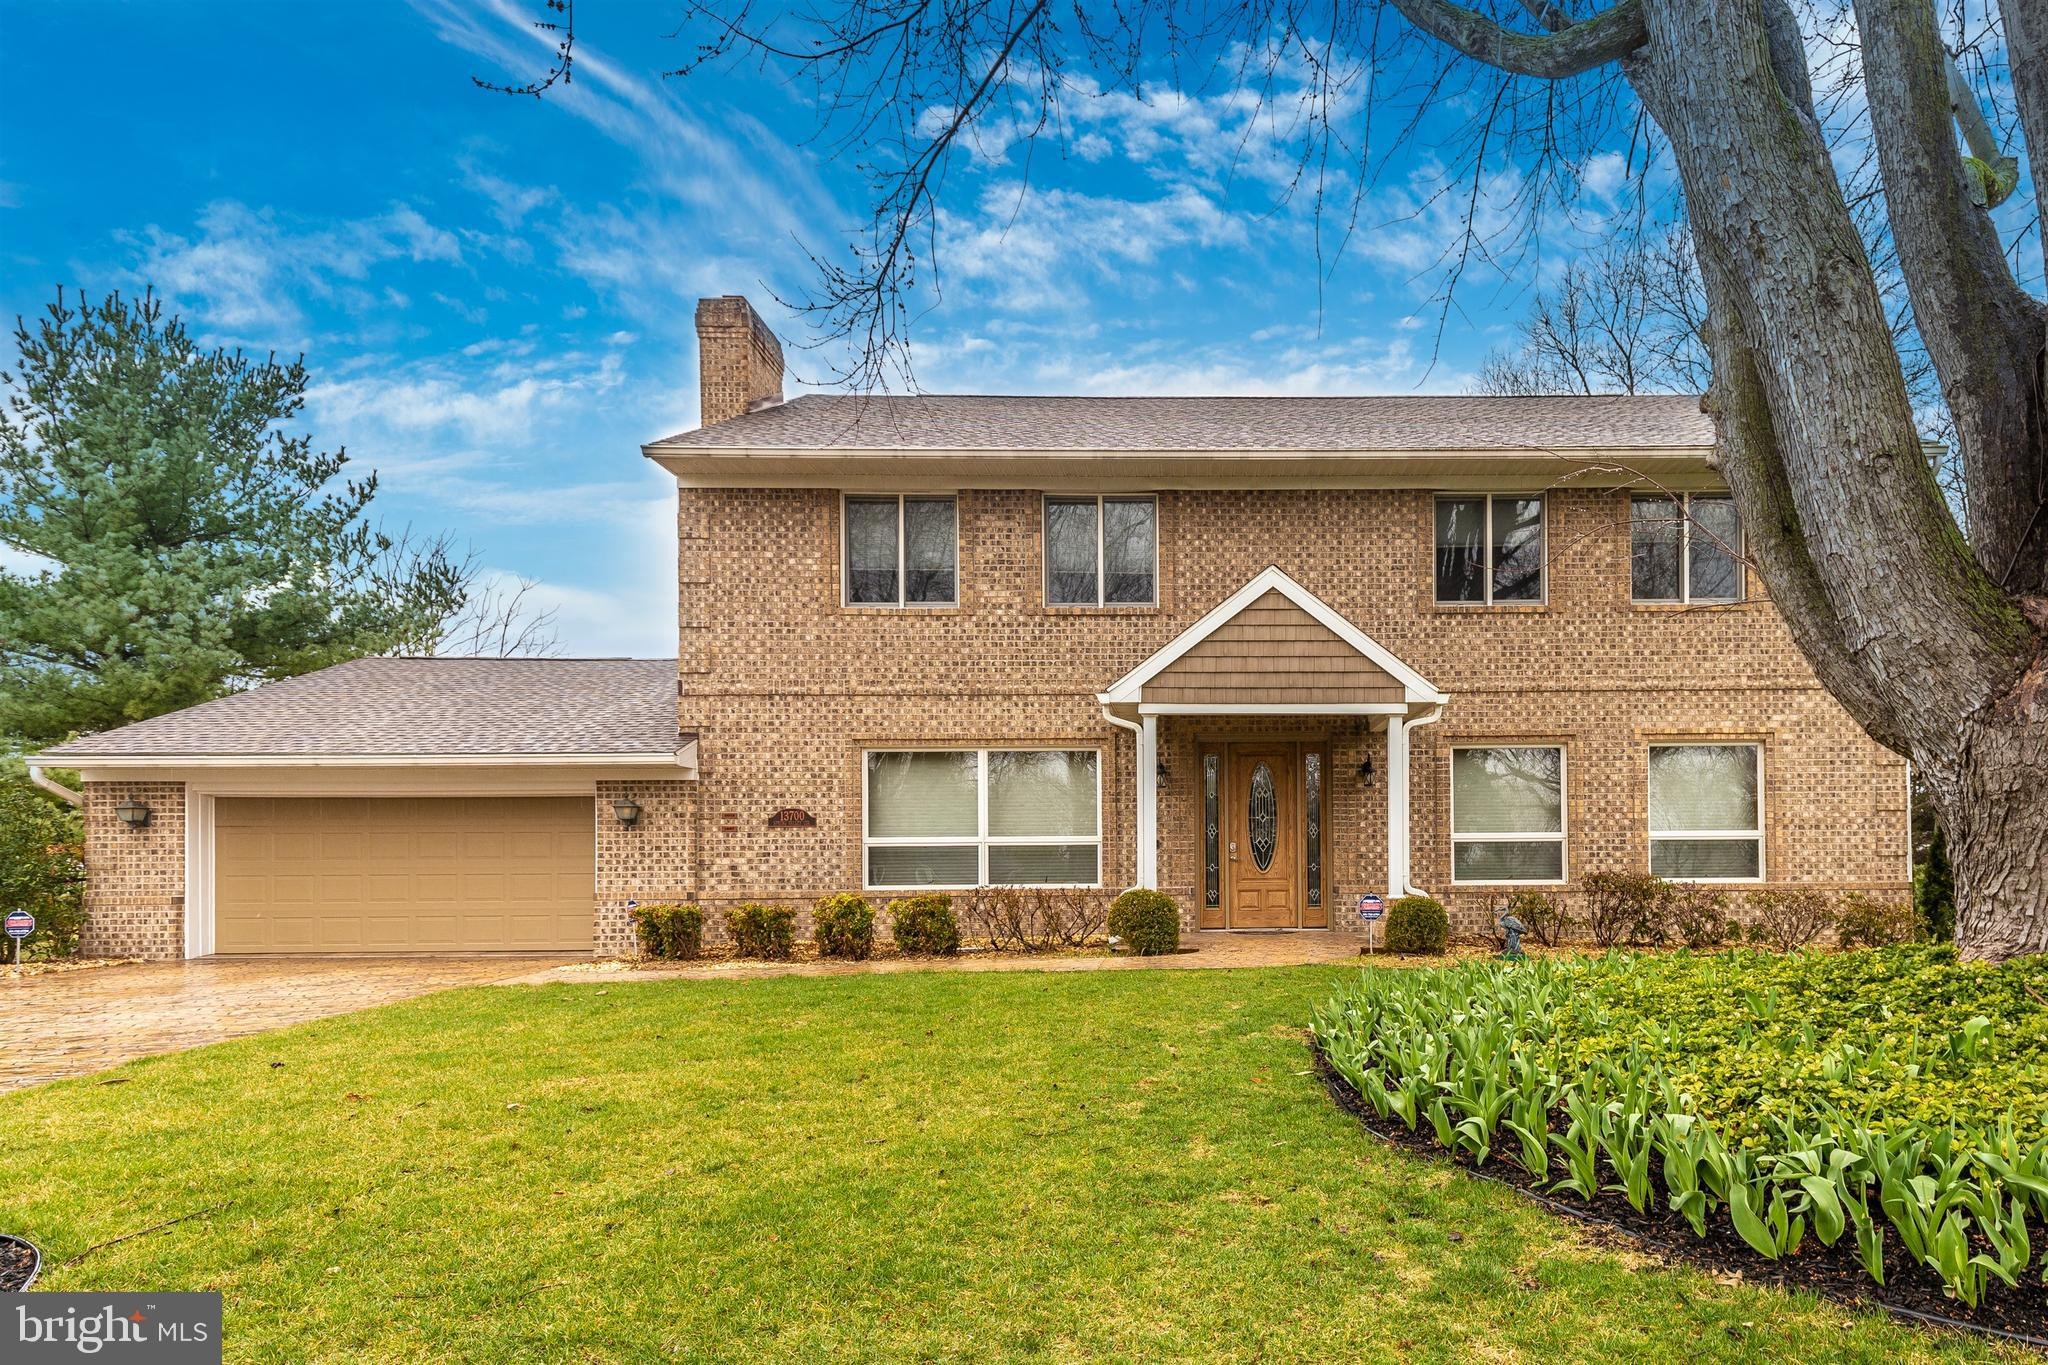 13700 SPRING VALLEY CIRCLE, HAGERSTOWN, MD 21742